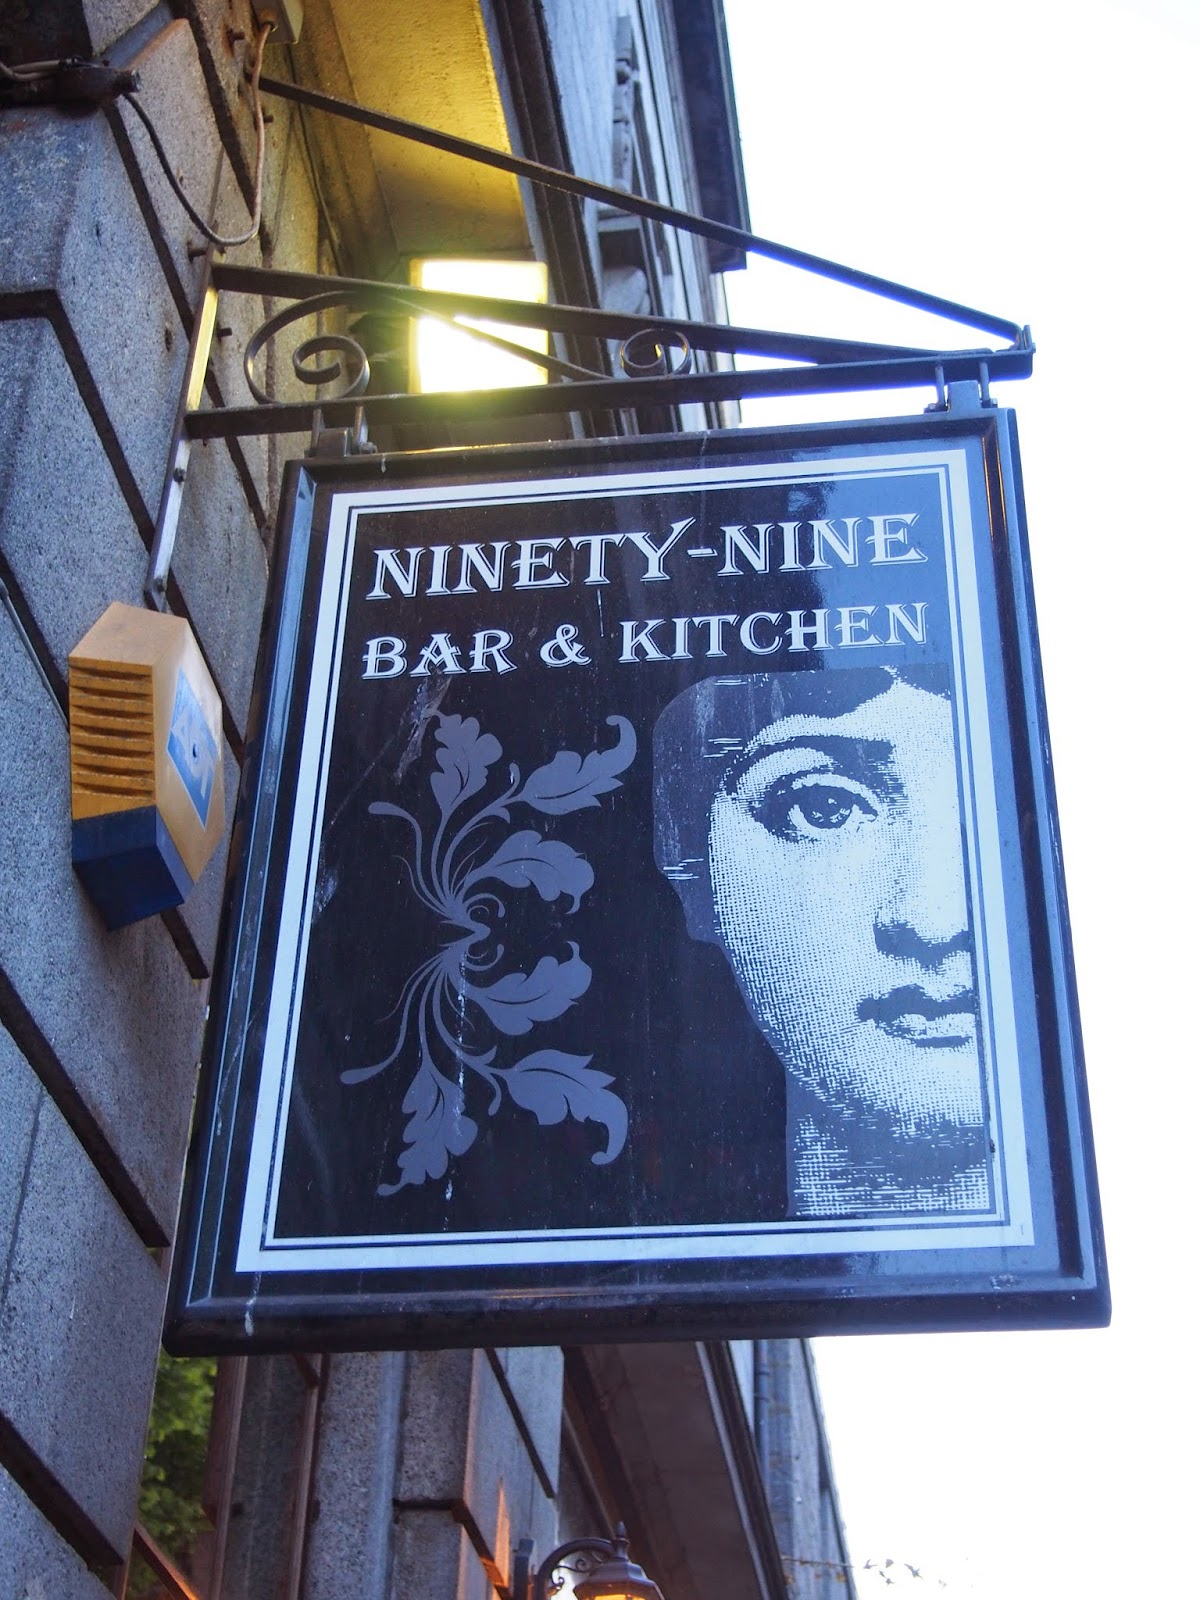 99 Bar And Kitchen Aberdeen